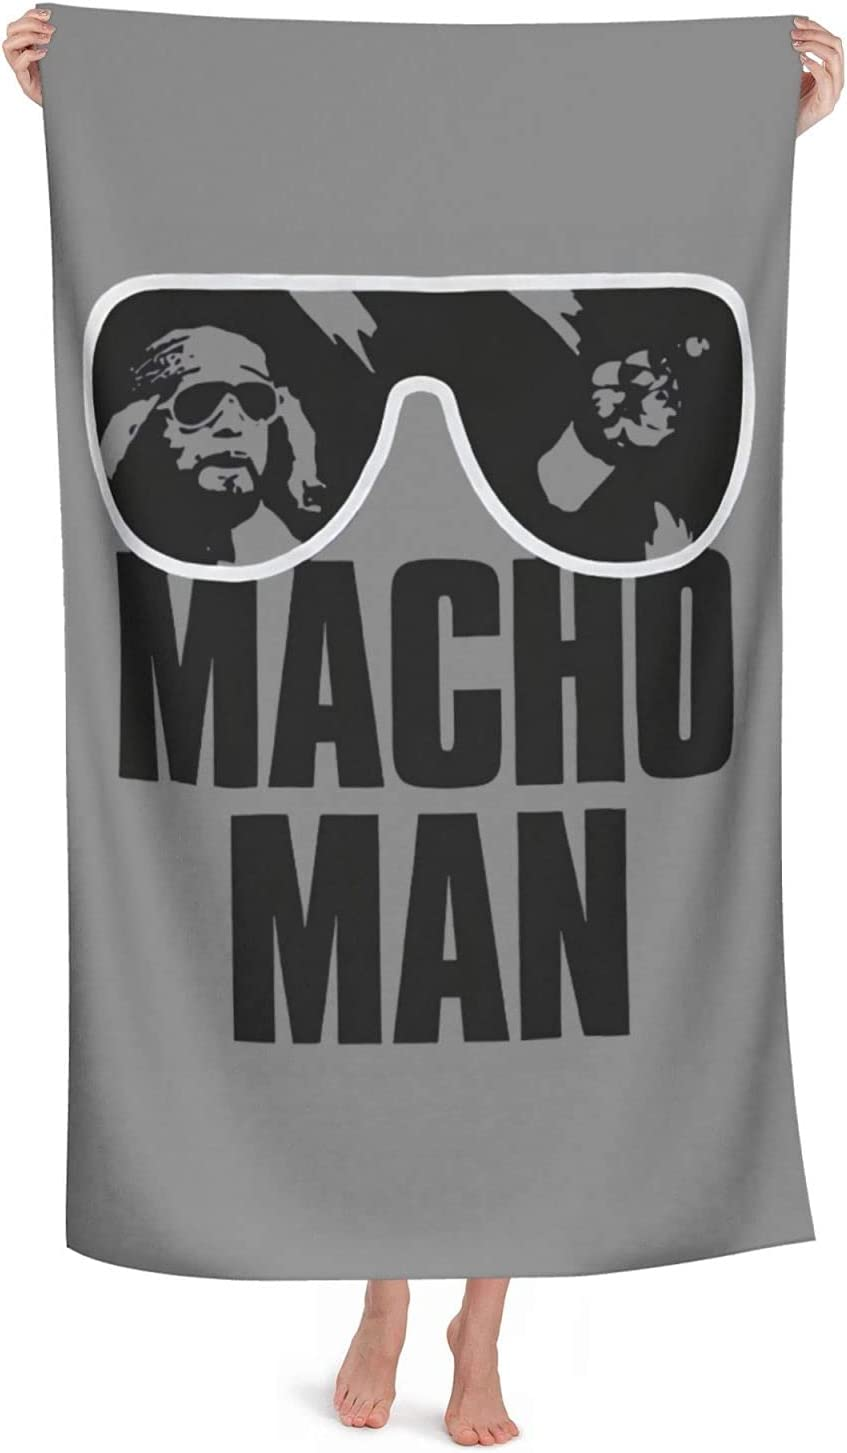 Lorieciosen Macho Man Towels Beach Dry Quick Swi Wholesale Soft and Same day shipping